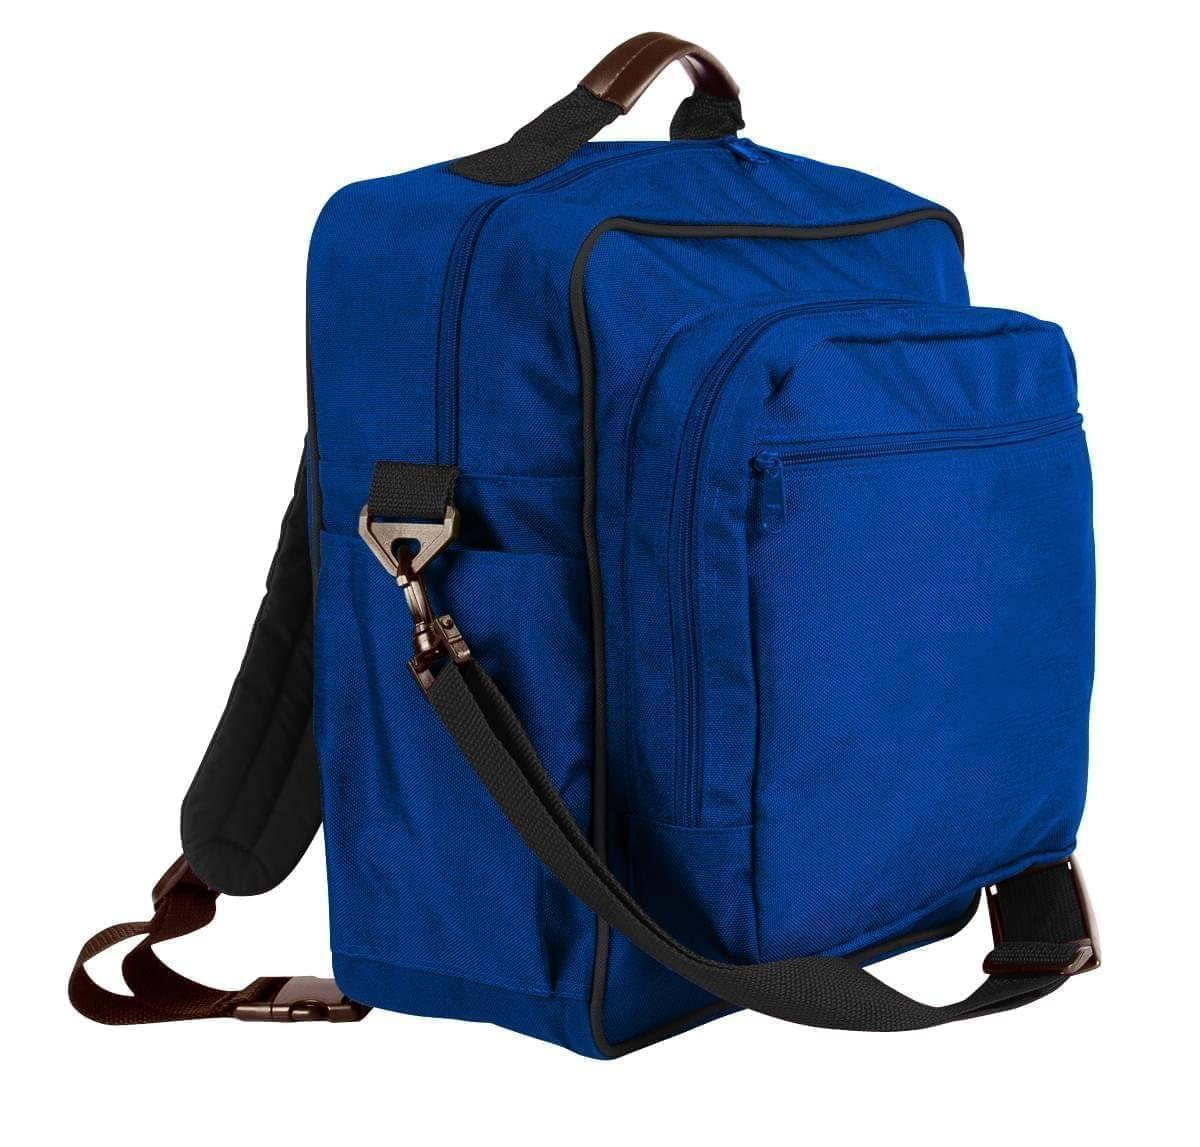 USA Made Poly Daypack Rucksacks, Royal Blue-Black, 1070-A0R